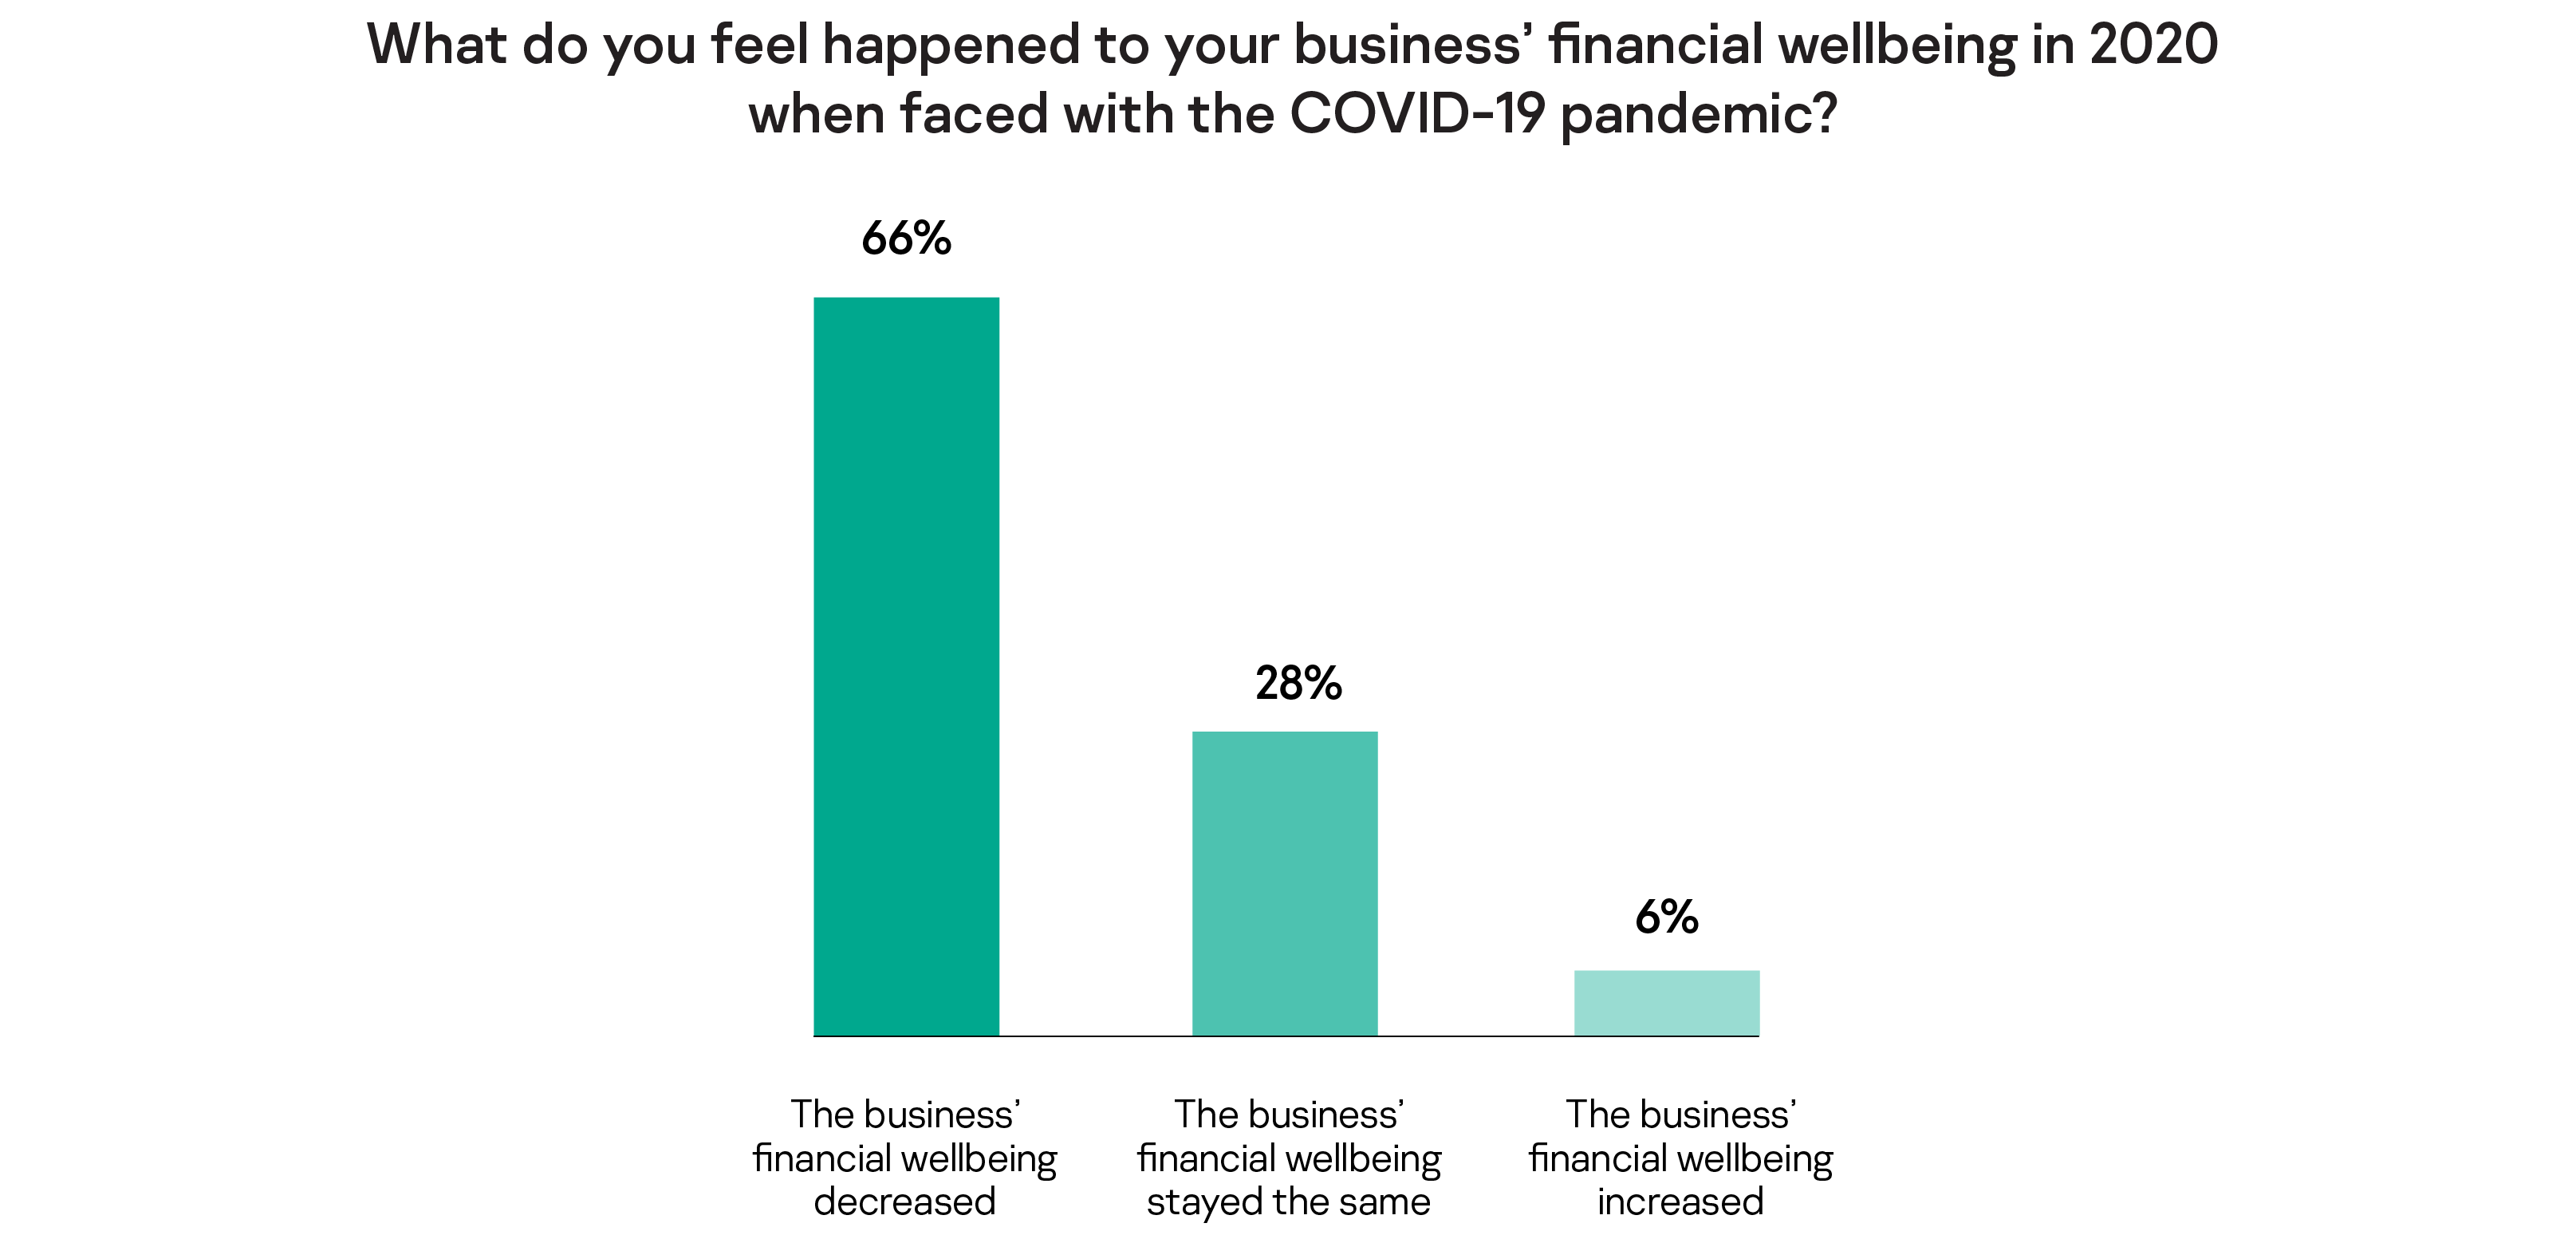 What do you feel happened to your business' financial wellbeing in 2020 when faced with the COVID-19 pandemic?